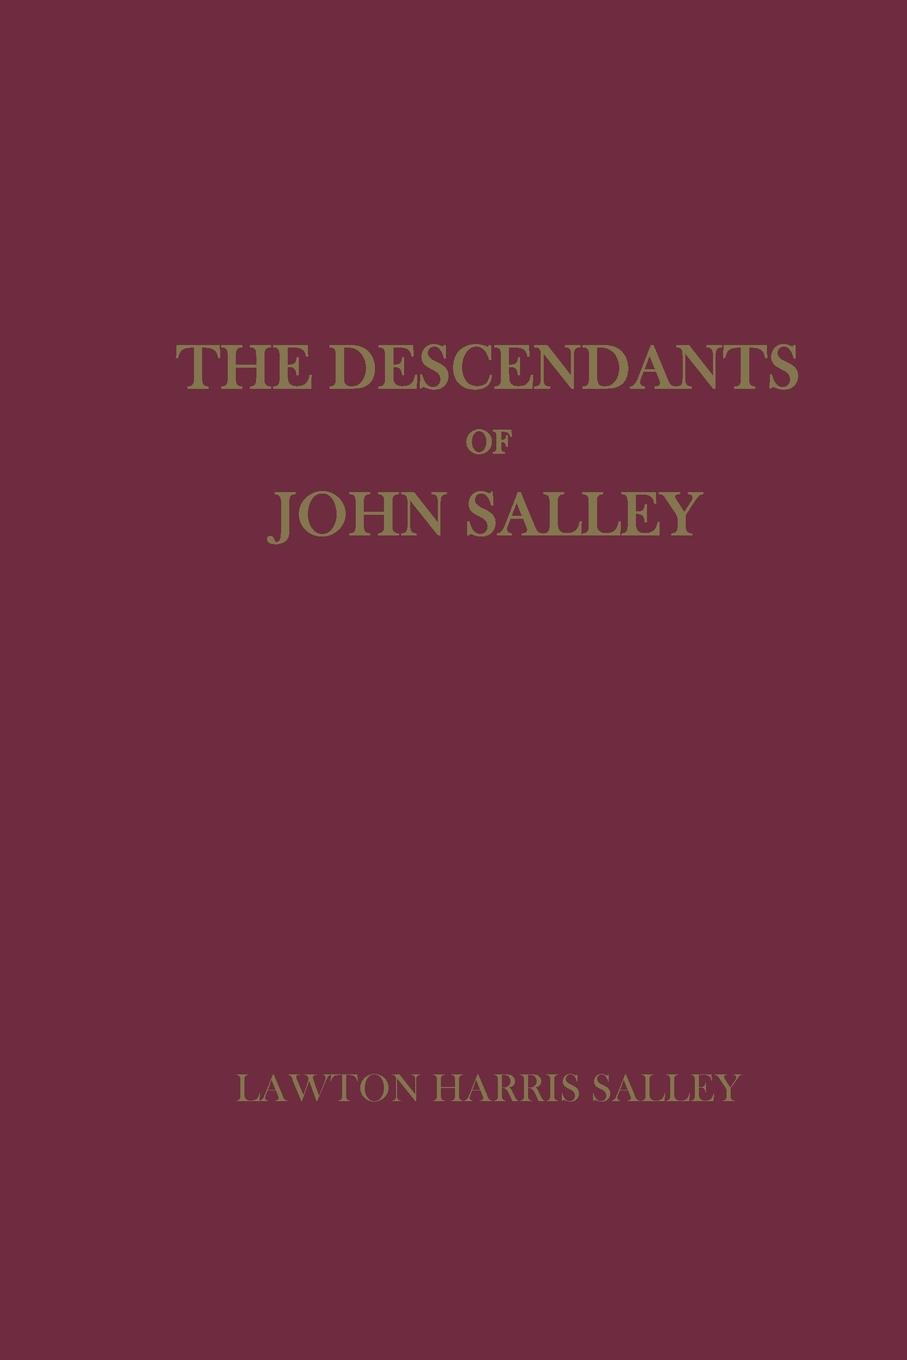 Lawton Harris Salley The Descendants of John Salley martin wood the family and descendants of st thomas more